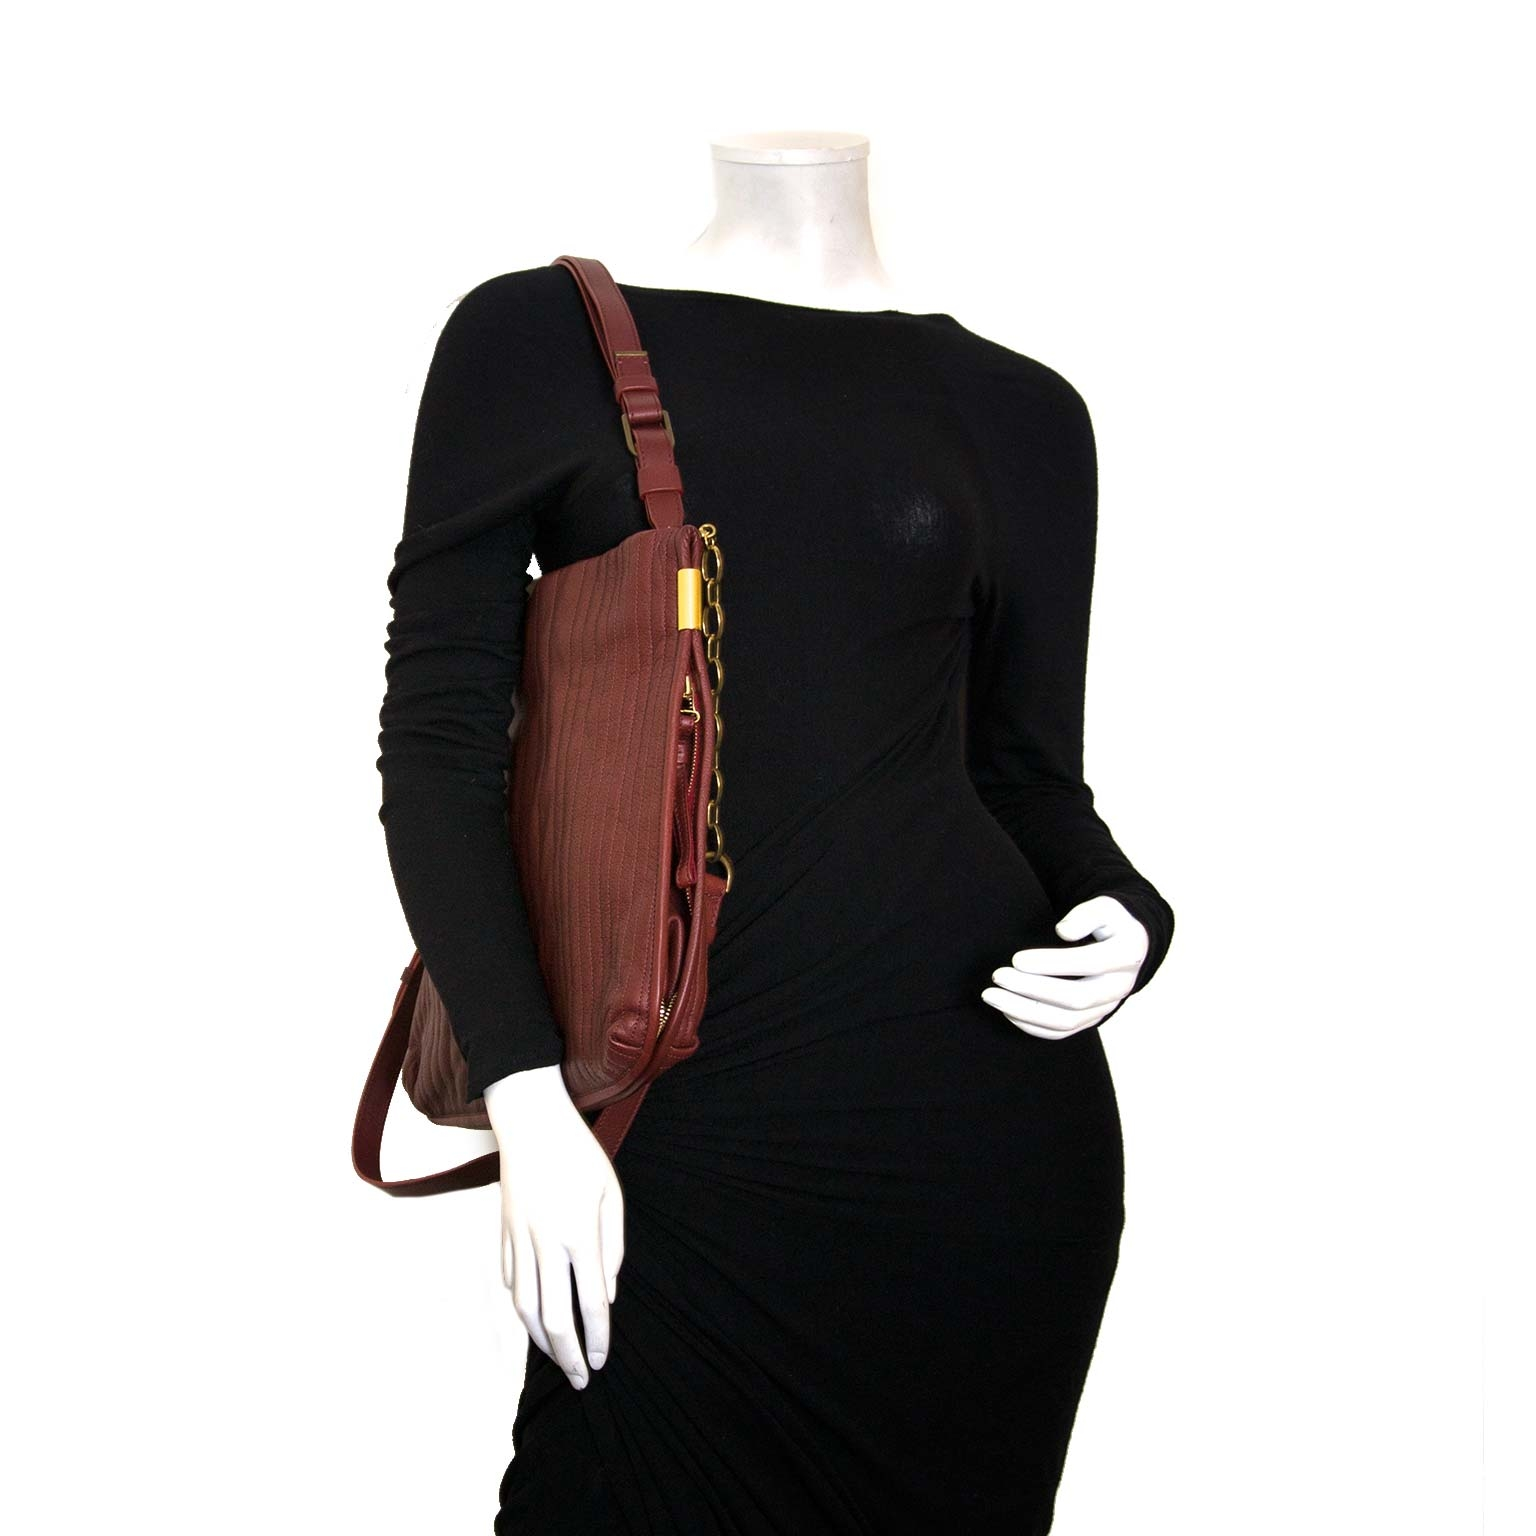 koop authentieke lanvin bordeaux tas at labellov vintage mode webshop belgië